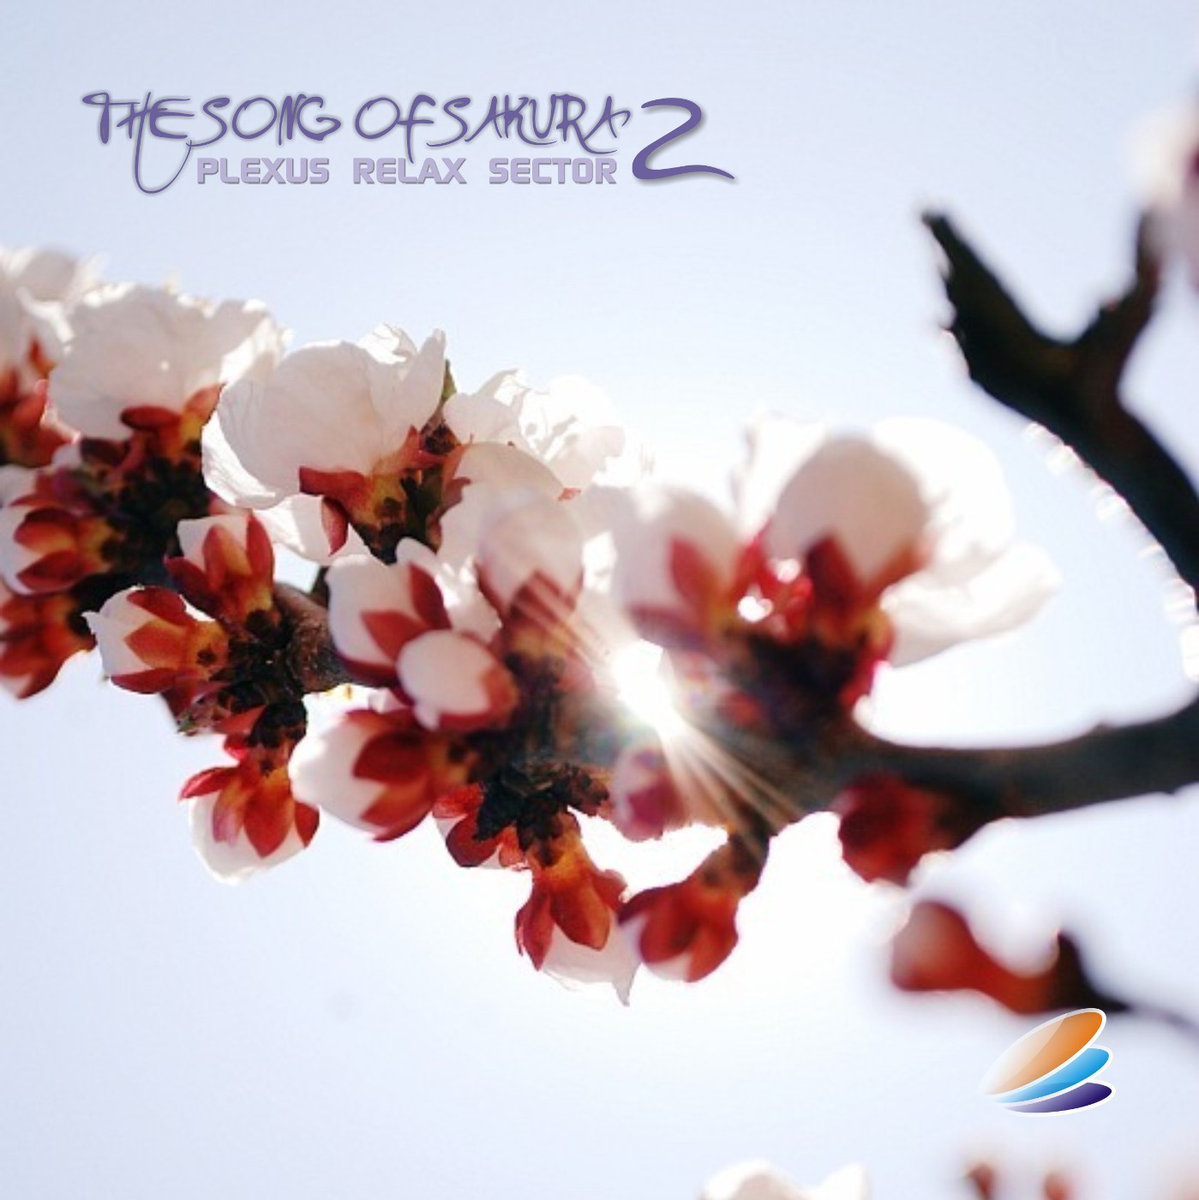 Plexus Relax Sector - The Song Of Sakura - 2